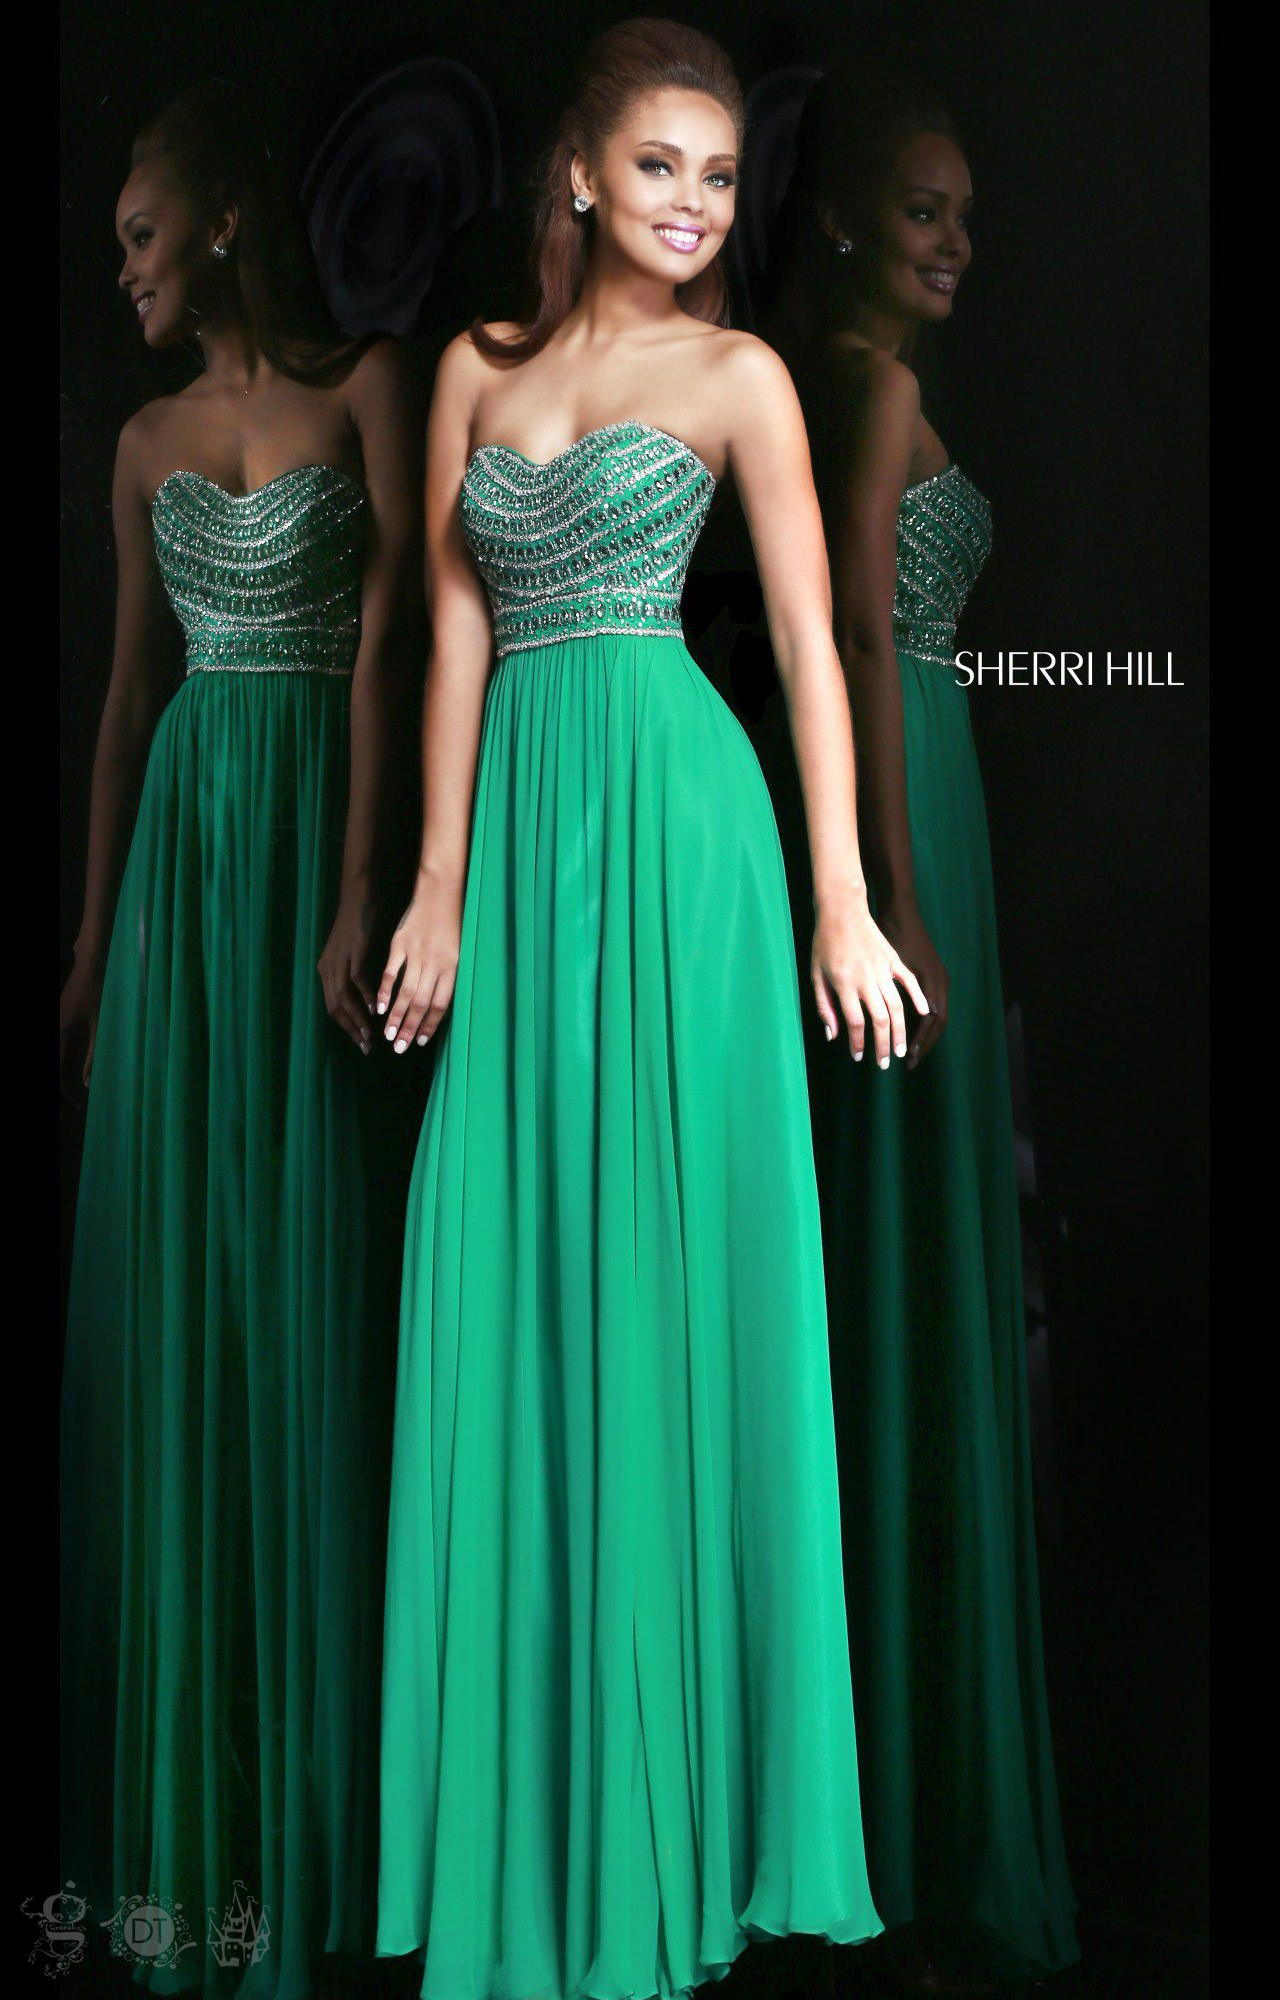 Prom Dresses Charleston Sc - Prom Dresses Cheap